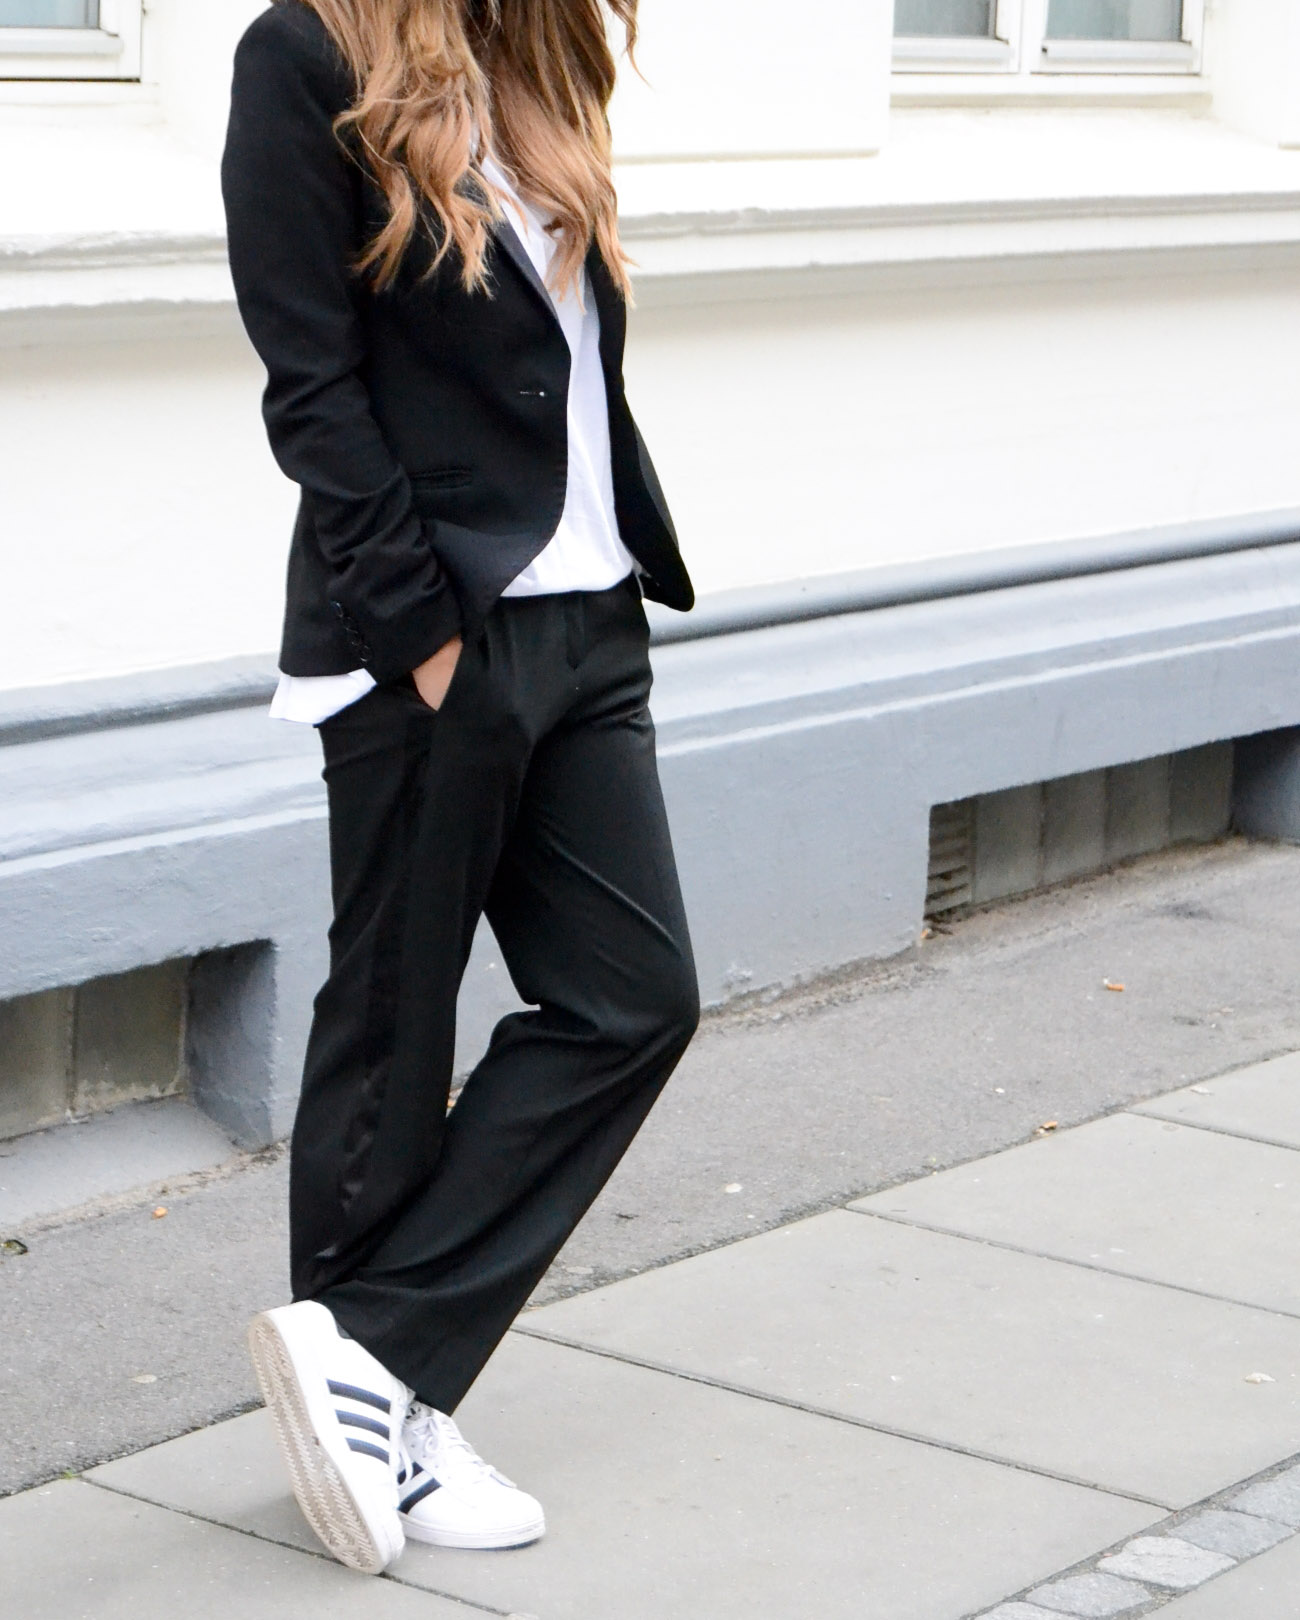 3 Ways to Wear Your Adidas Sneakers outside the Gym